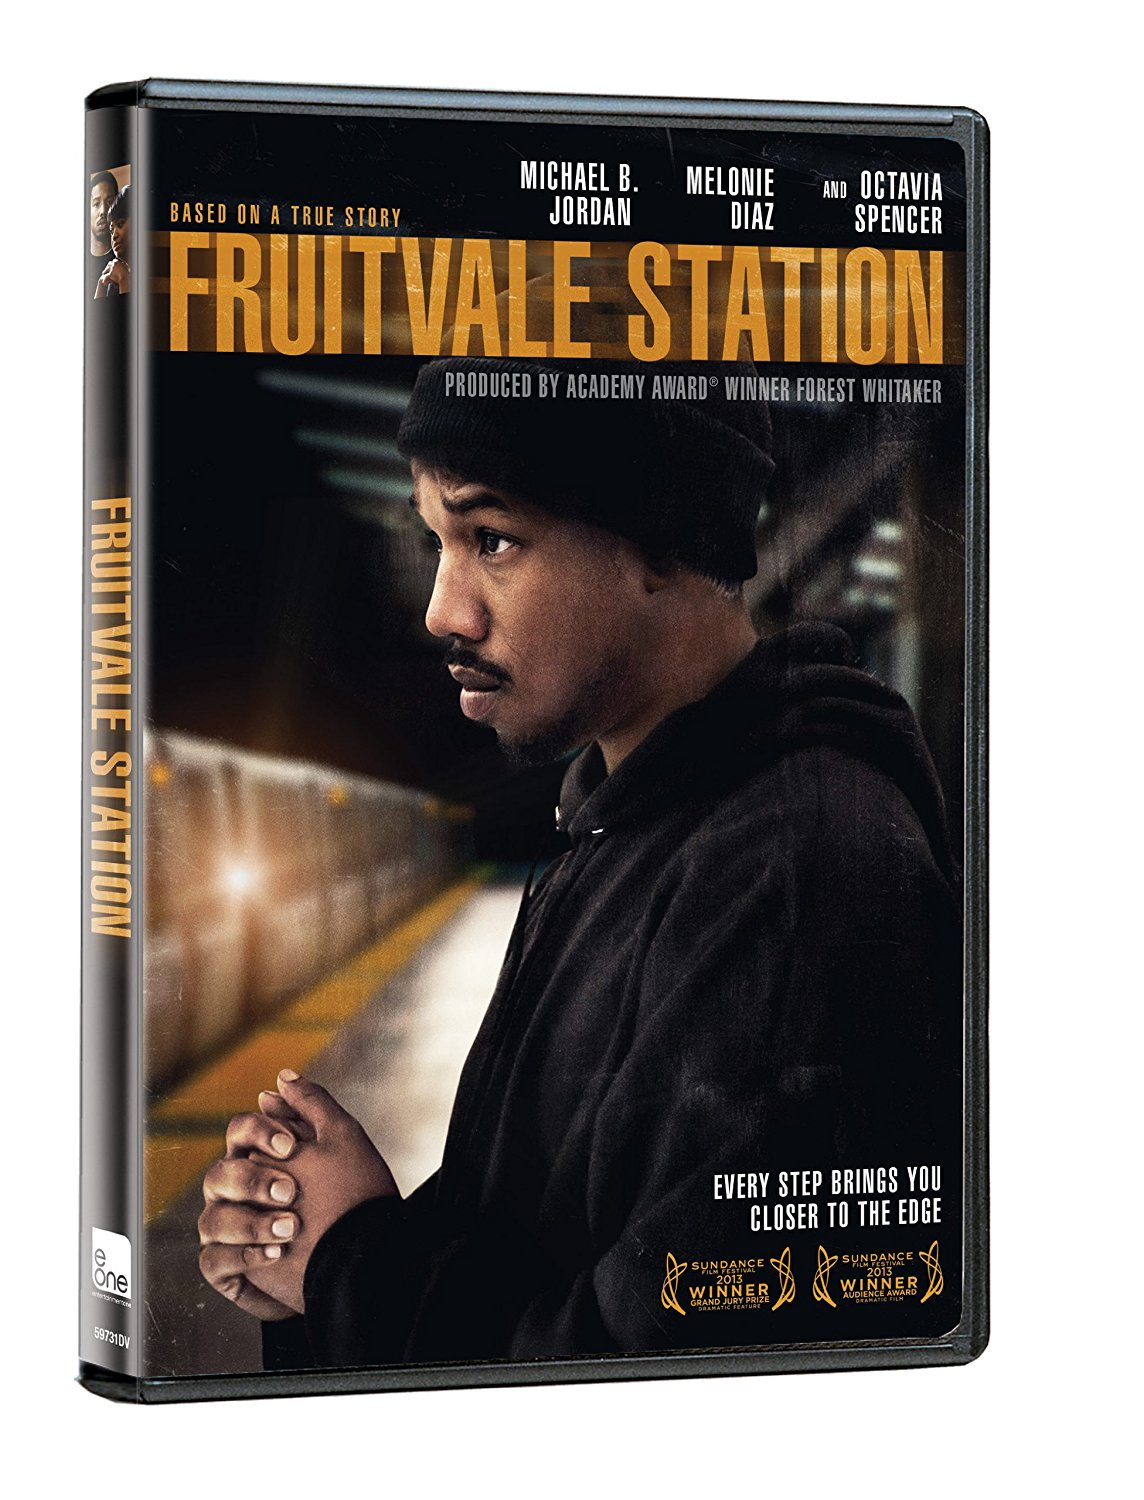 Image of Fruitvale Station